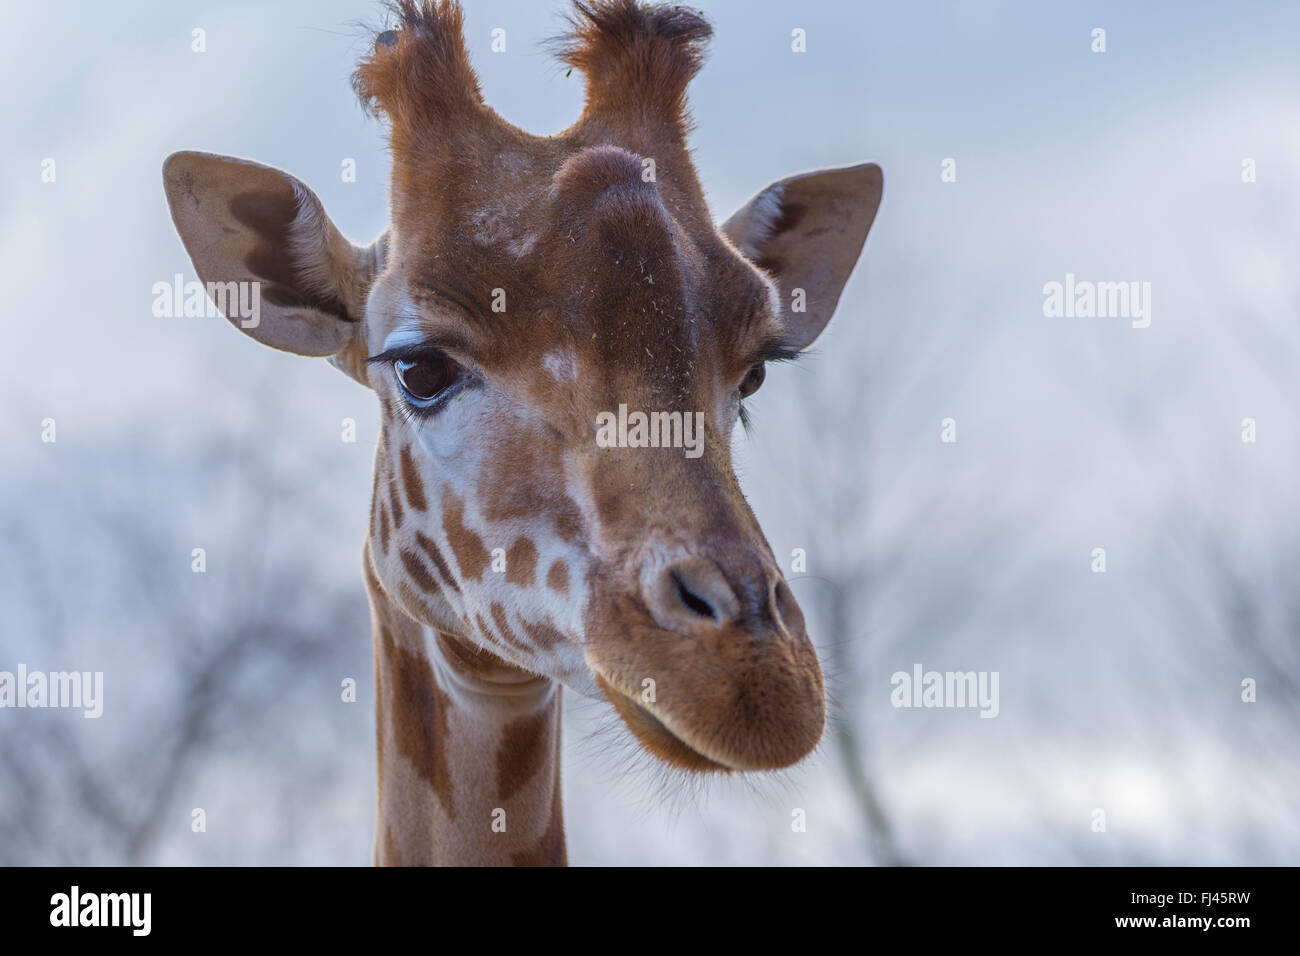 A giraffe up close - Stock Image